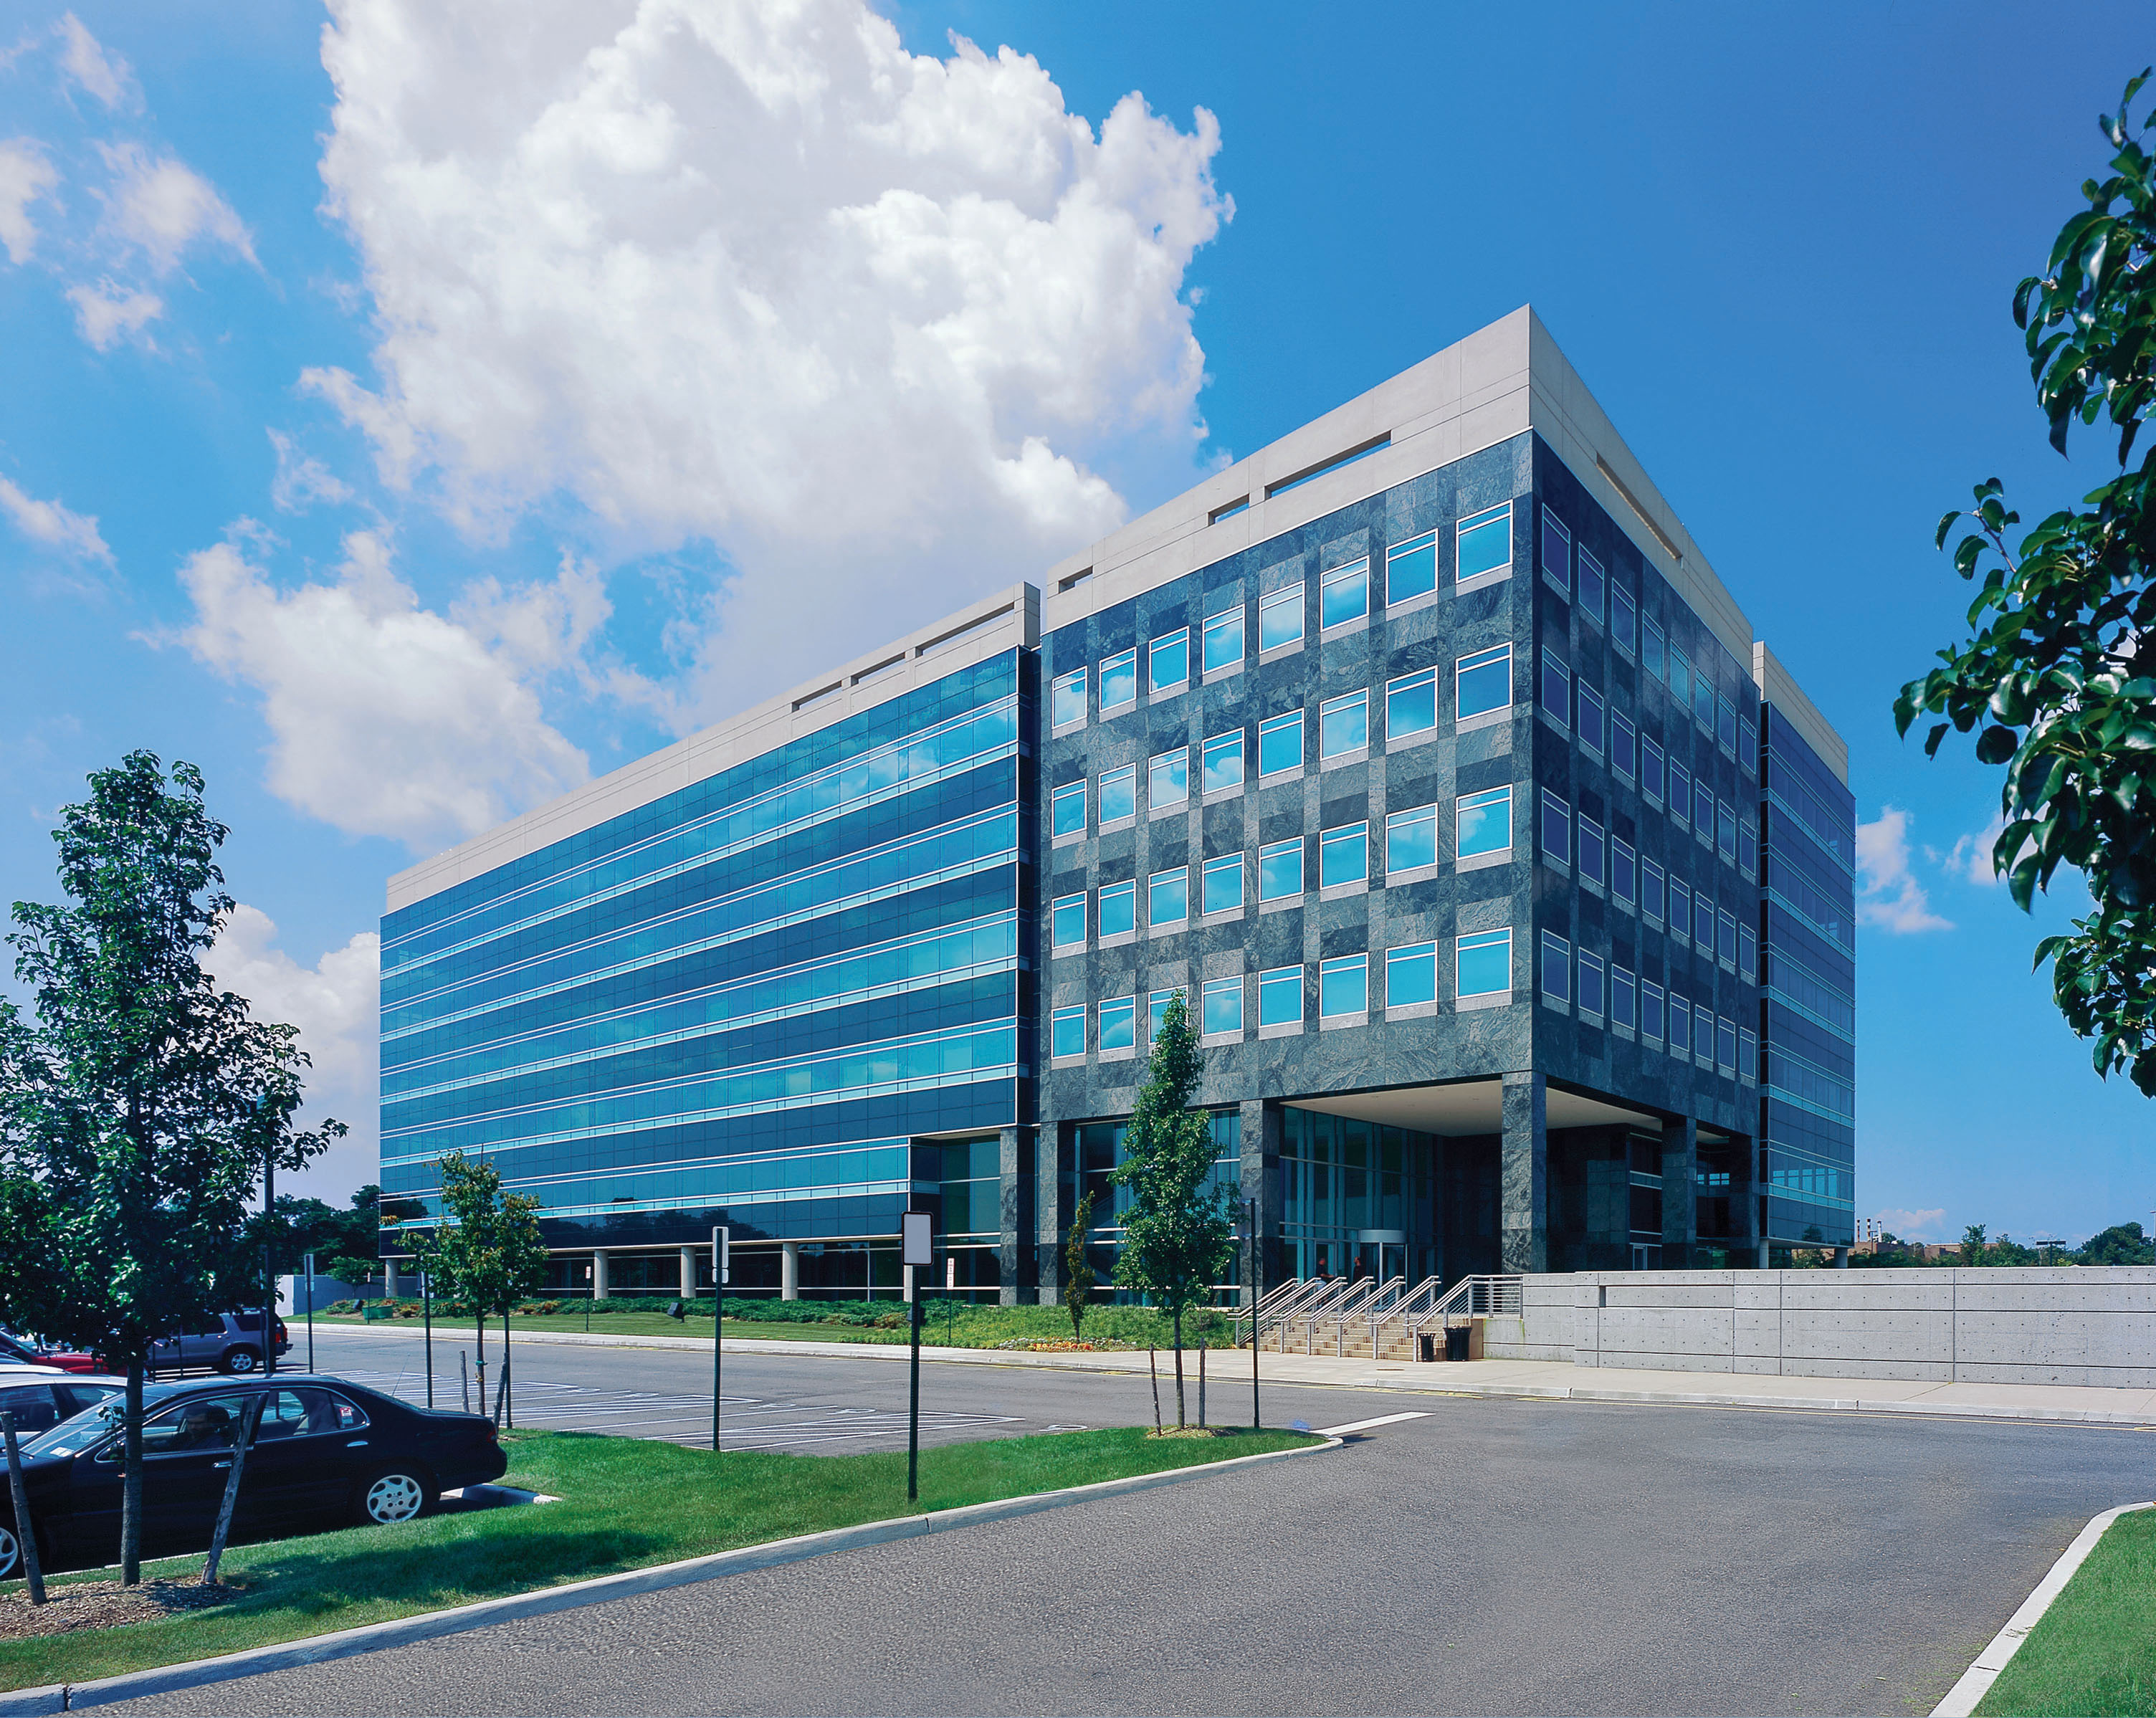 Stewart title insurance company moves to 100 motor parkway for Hotels on motor parkway long island